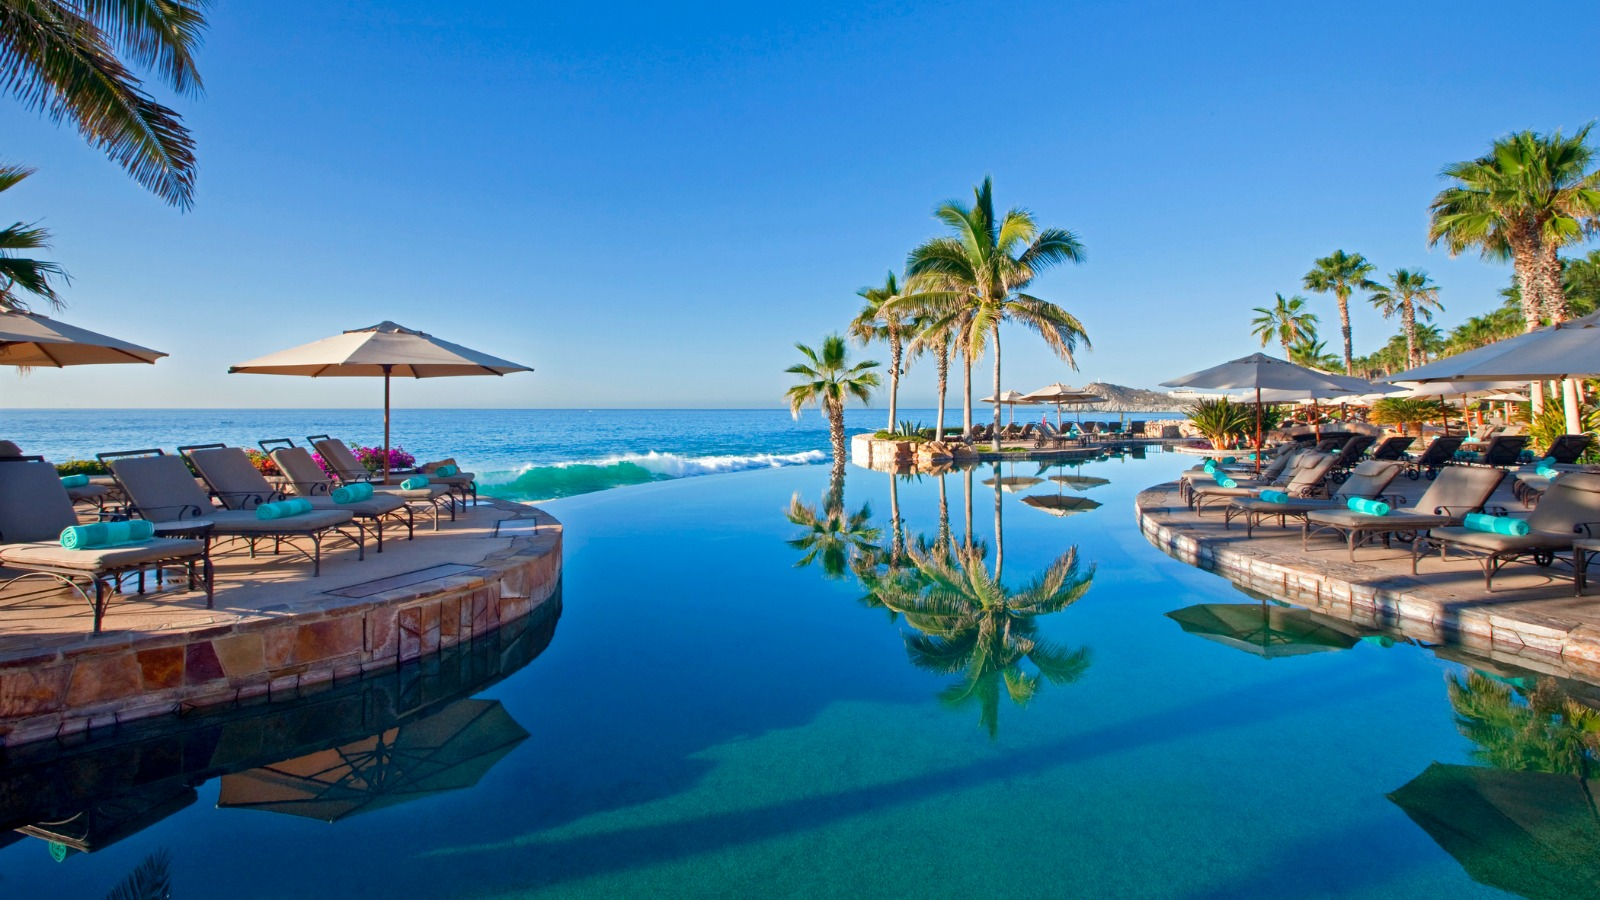 Infinity Pool at the Sheraton Hacienda del Mar Golf & Spa Resort